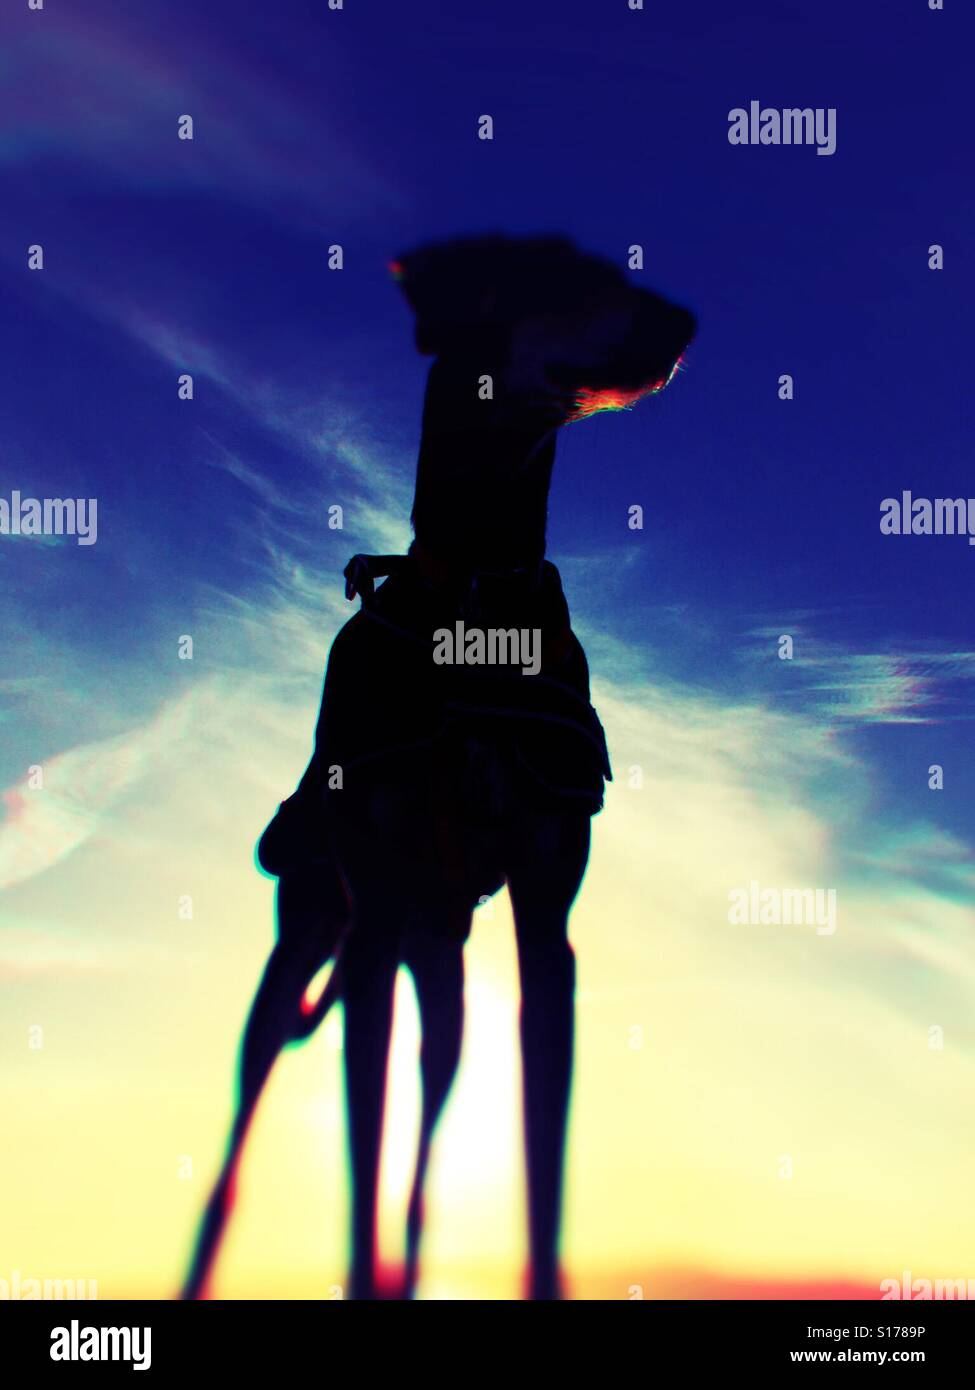 Superdog. - Stock Image